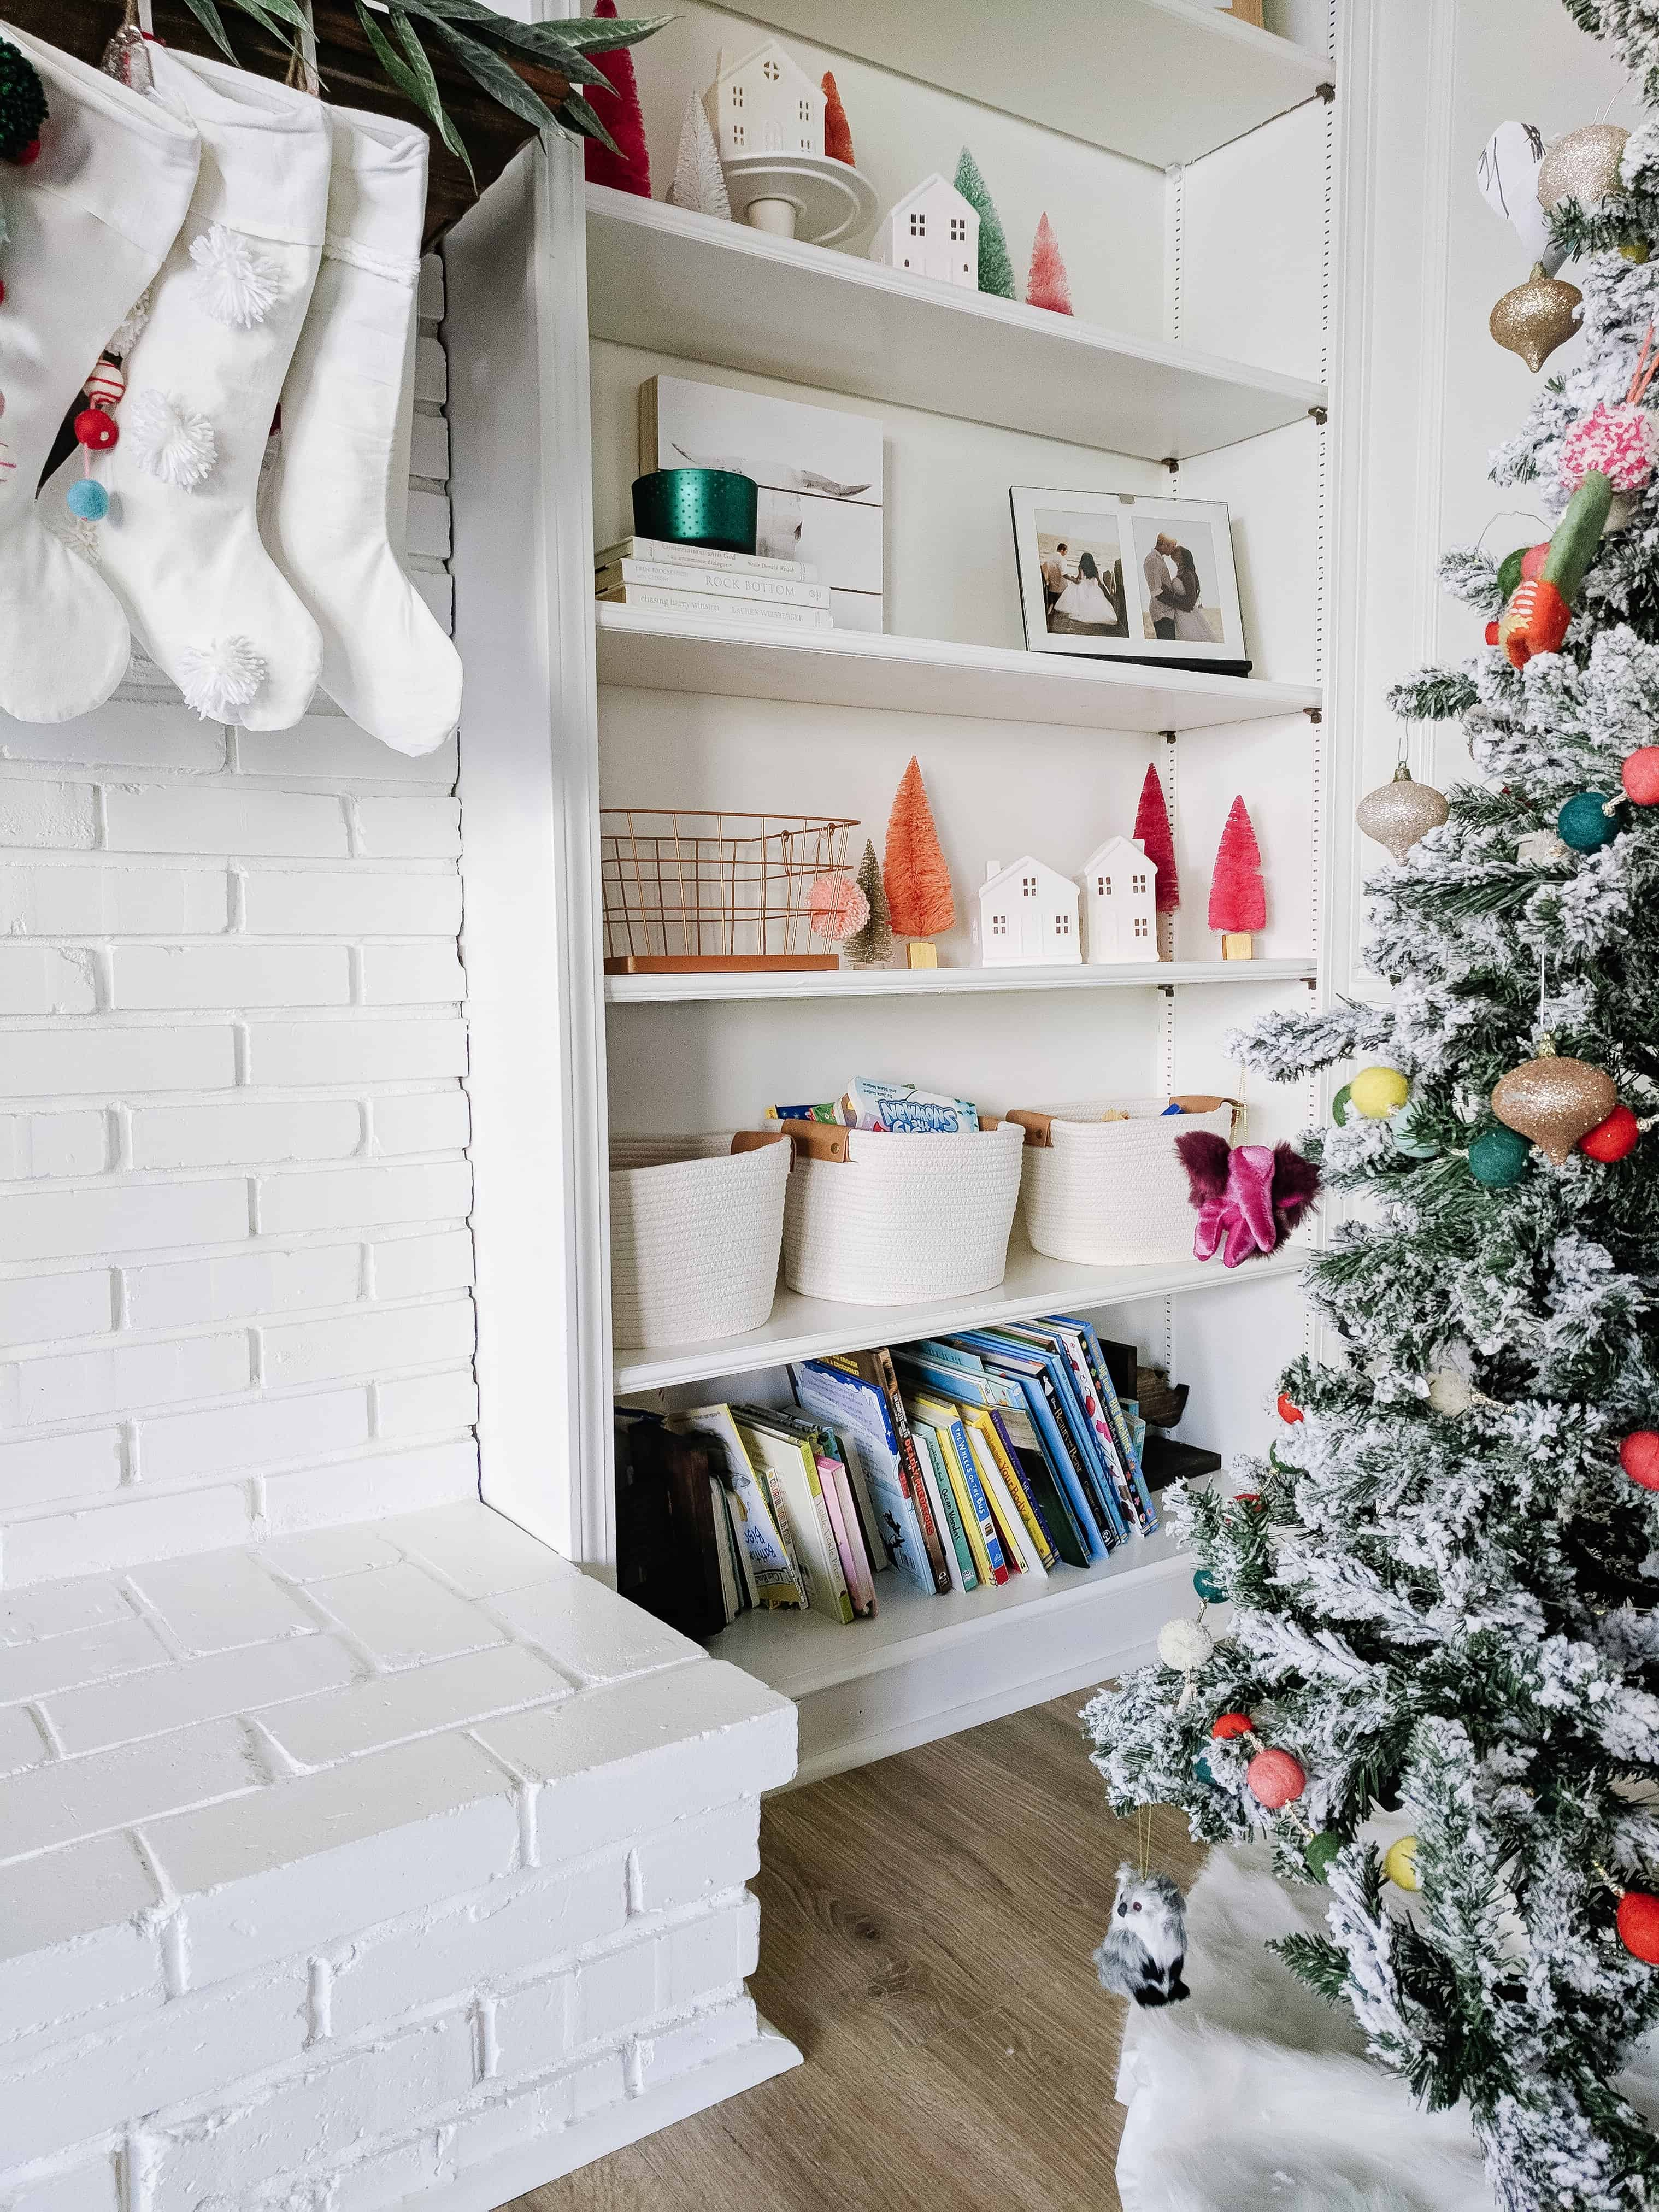 Built in's with toy organization